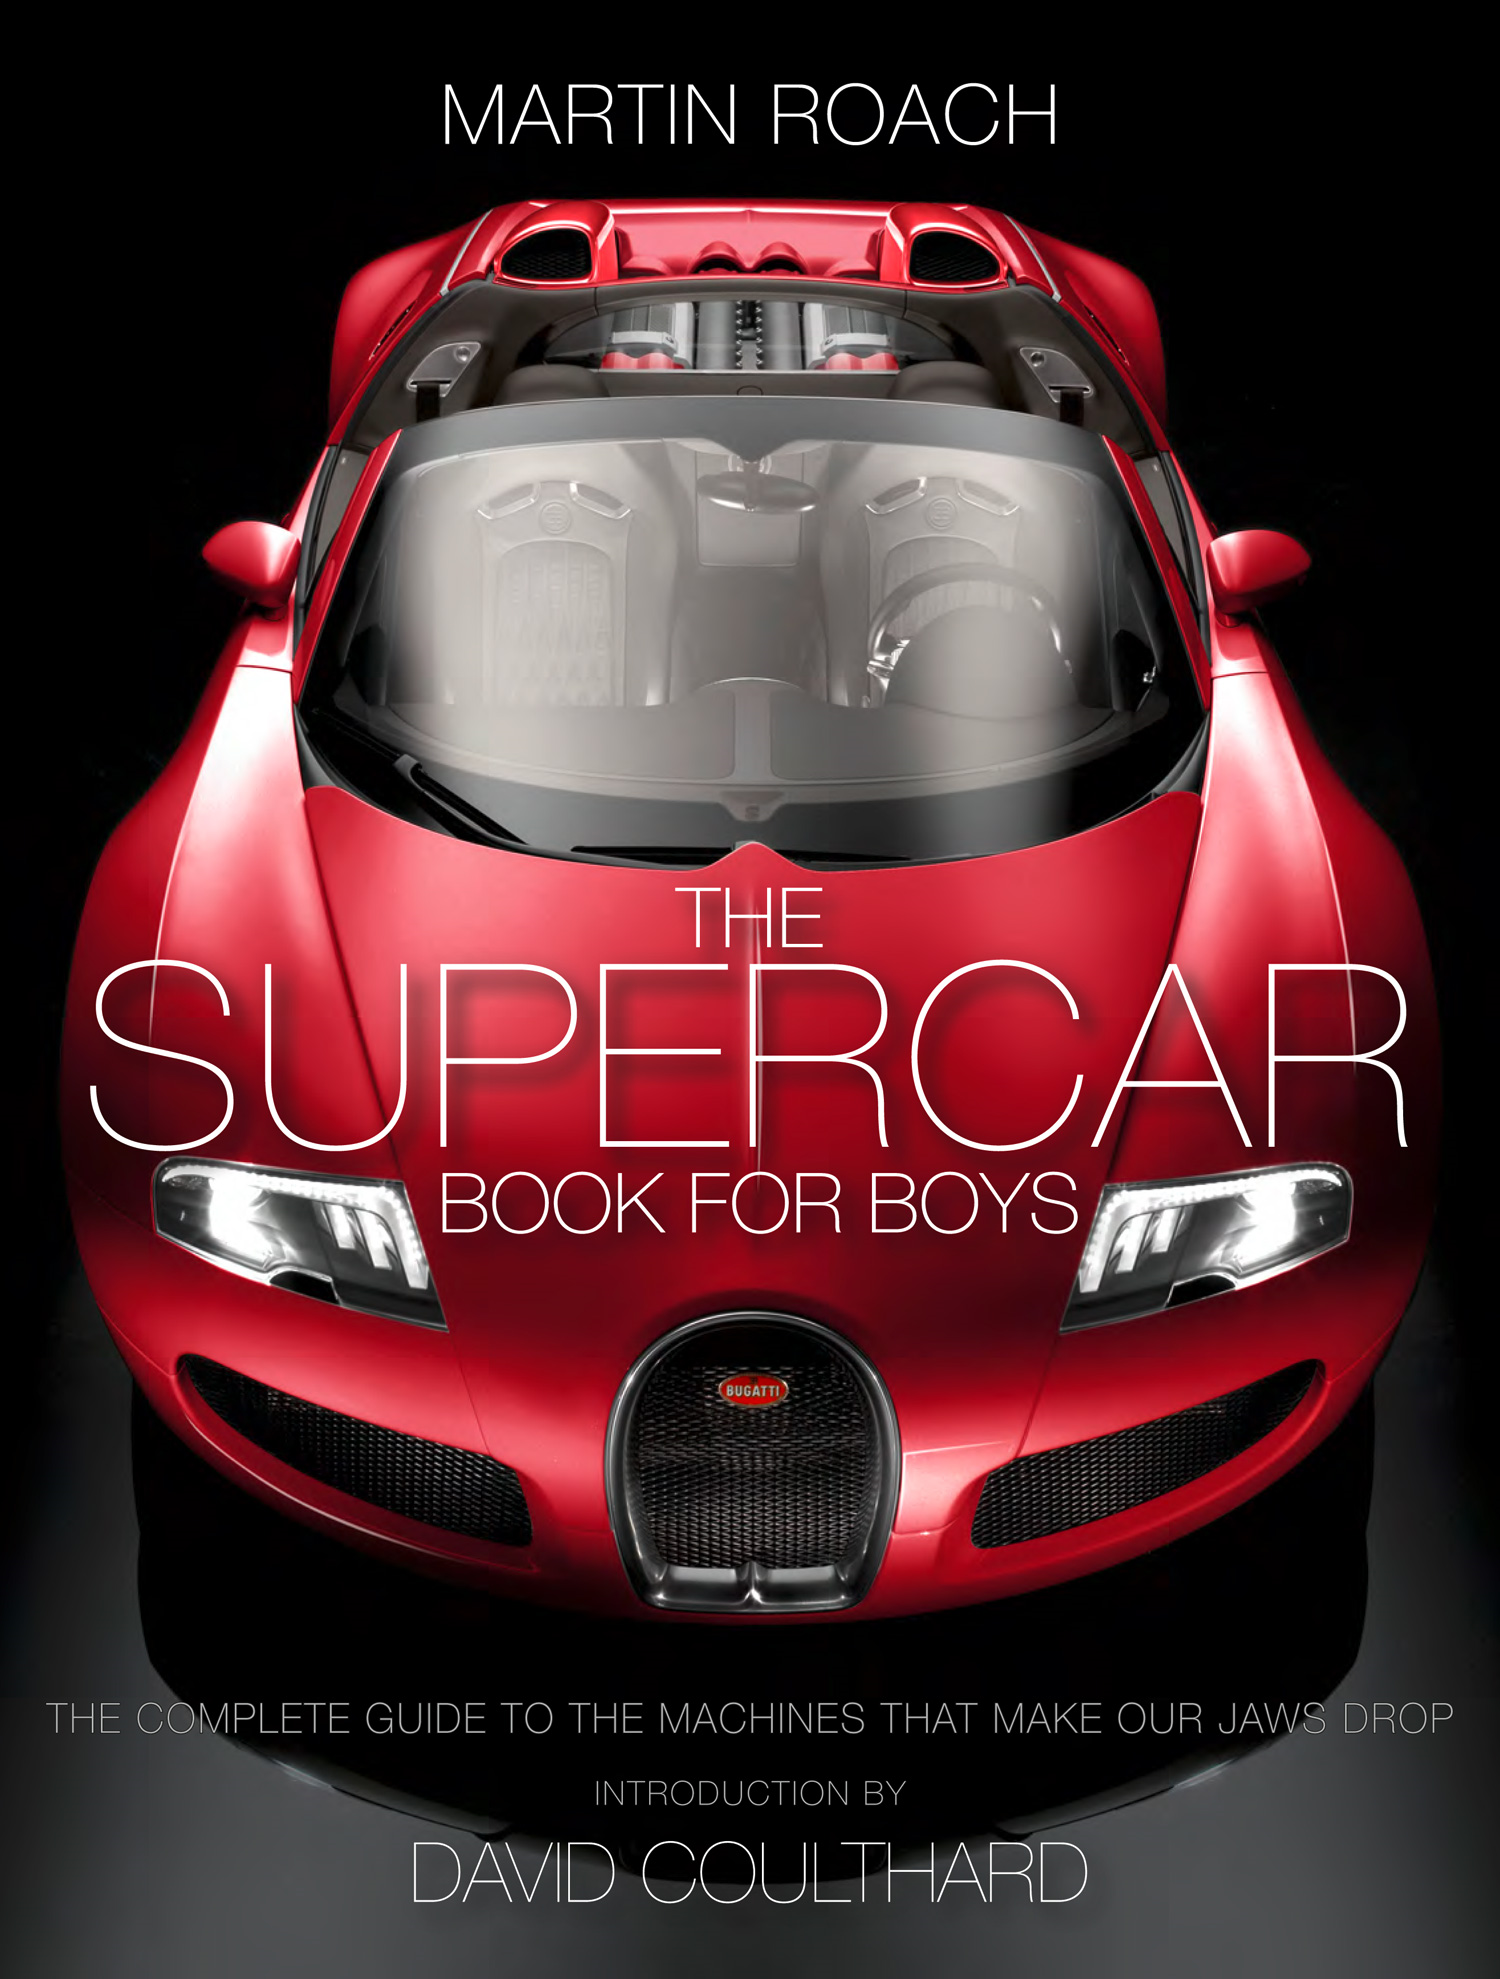 The Supercar Book for Boys: The Complete Guide to the Machines that Make Our Jaws Drop